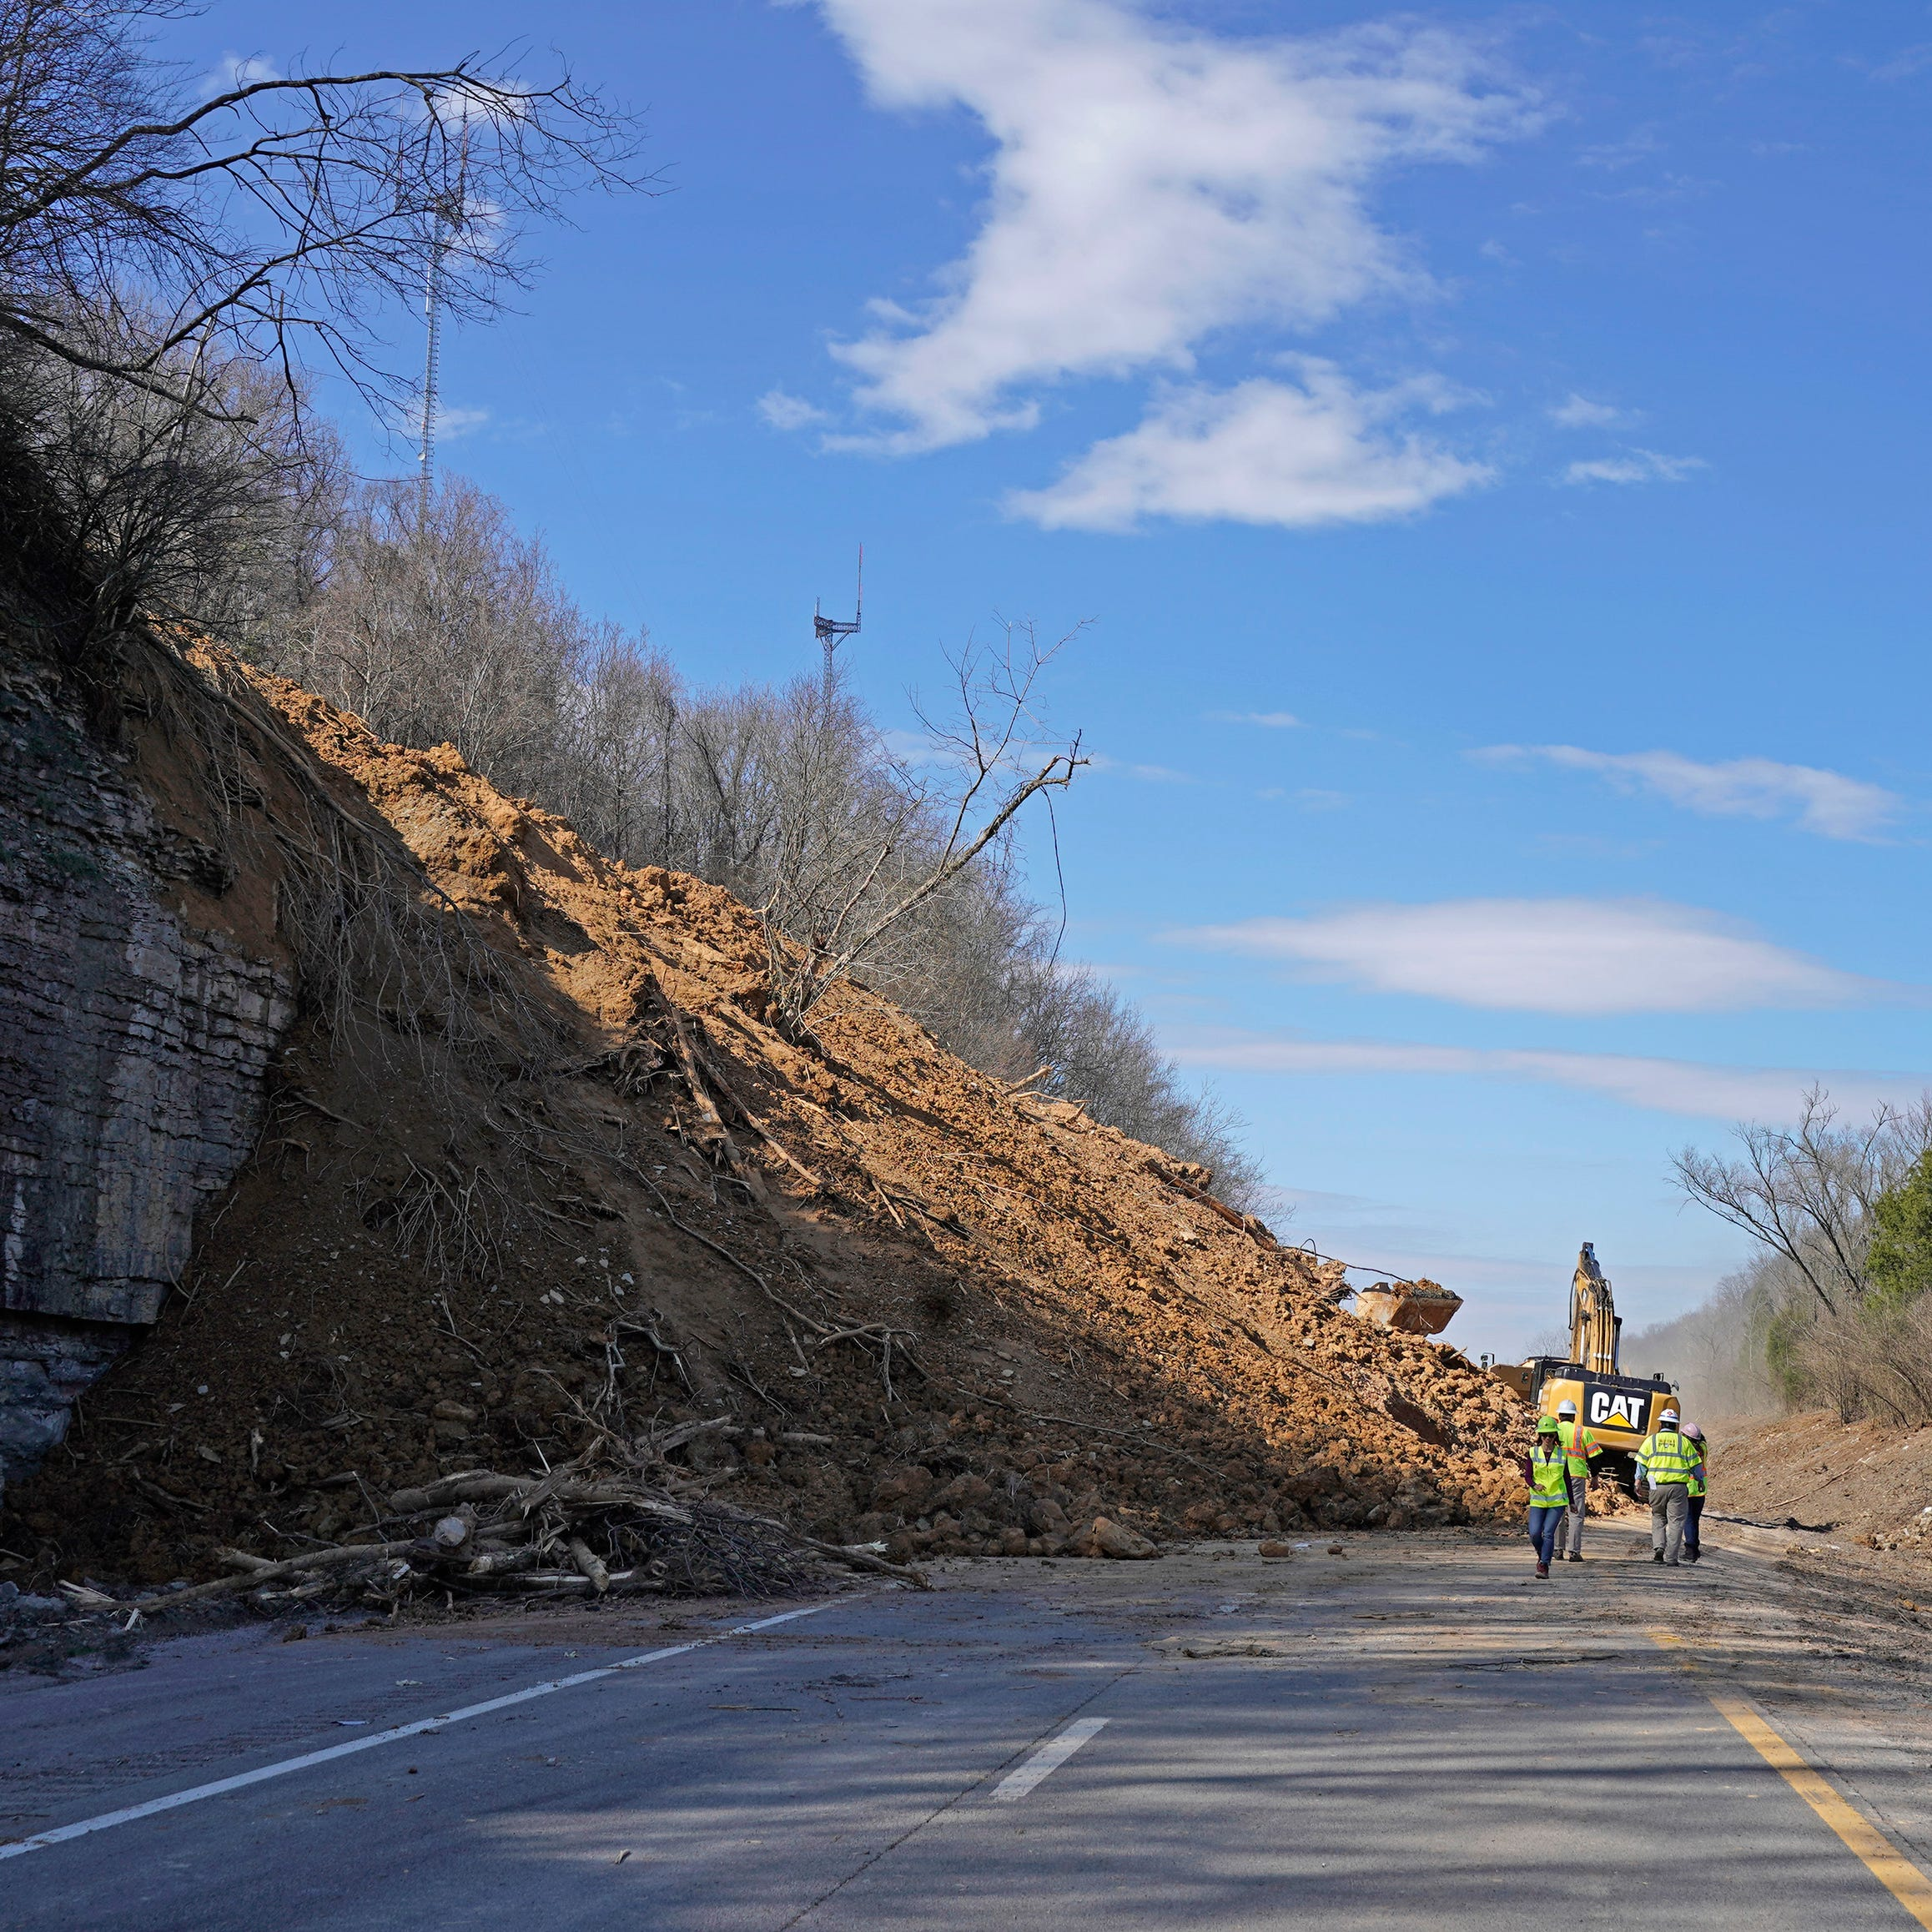 I-24 mudslide: New eastbound lane between Clarksville and Nashville reopened Wednesday, ahead of schedule